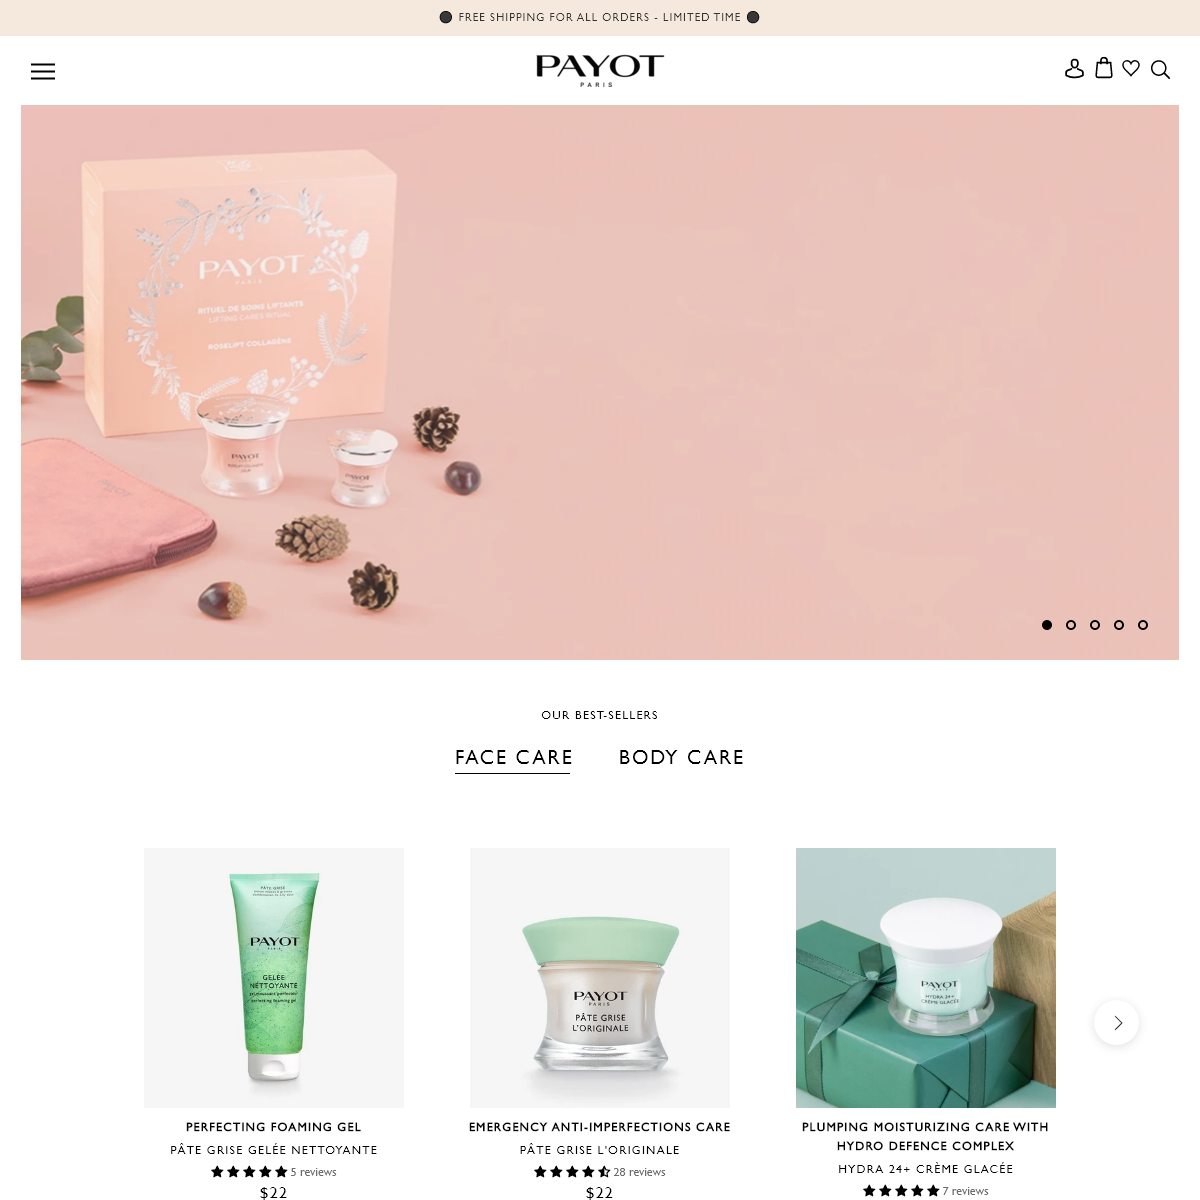 PAYOT - Beauty Products, Skincare, Anti-Aging and Body Care